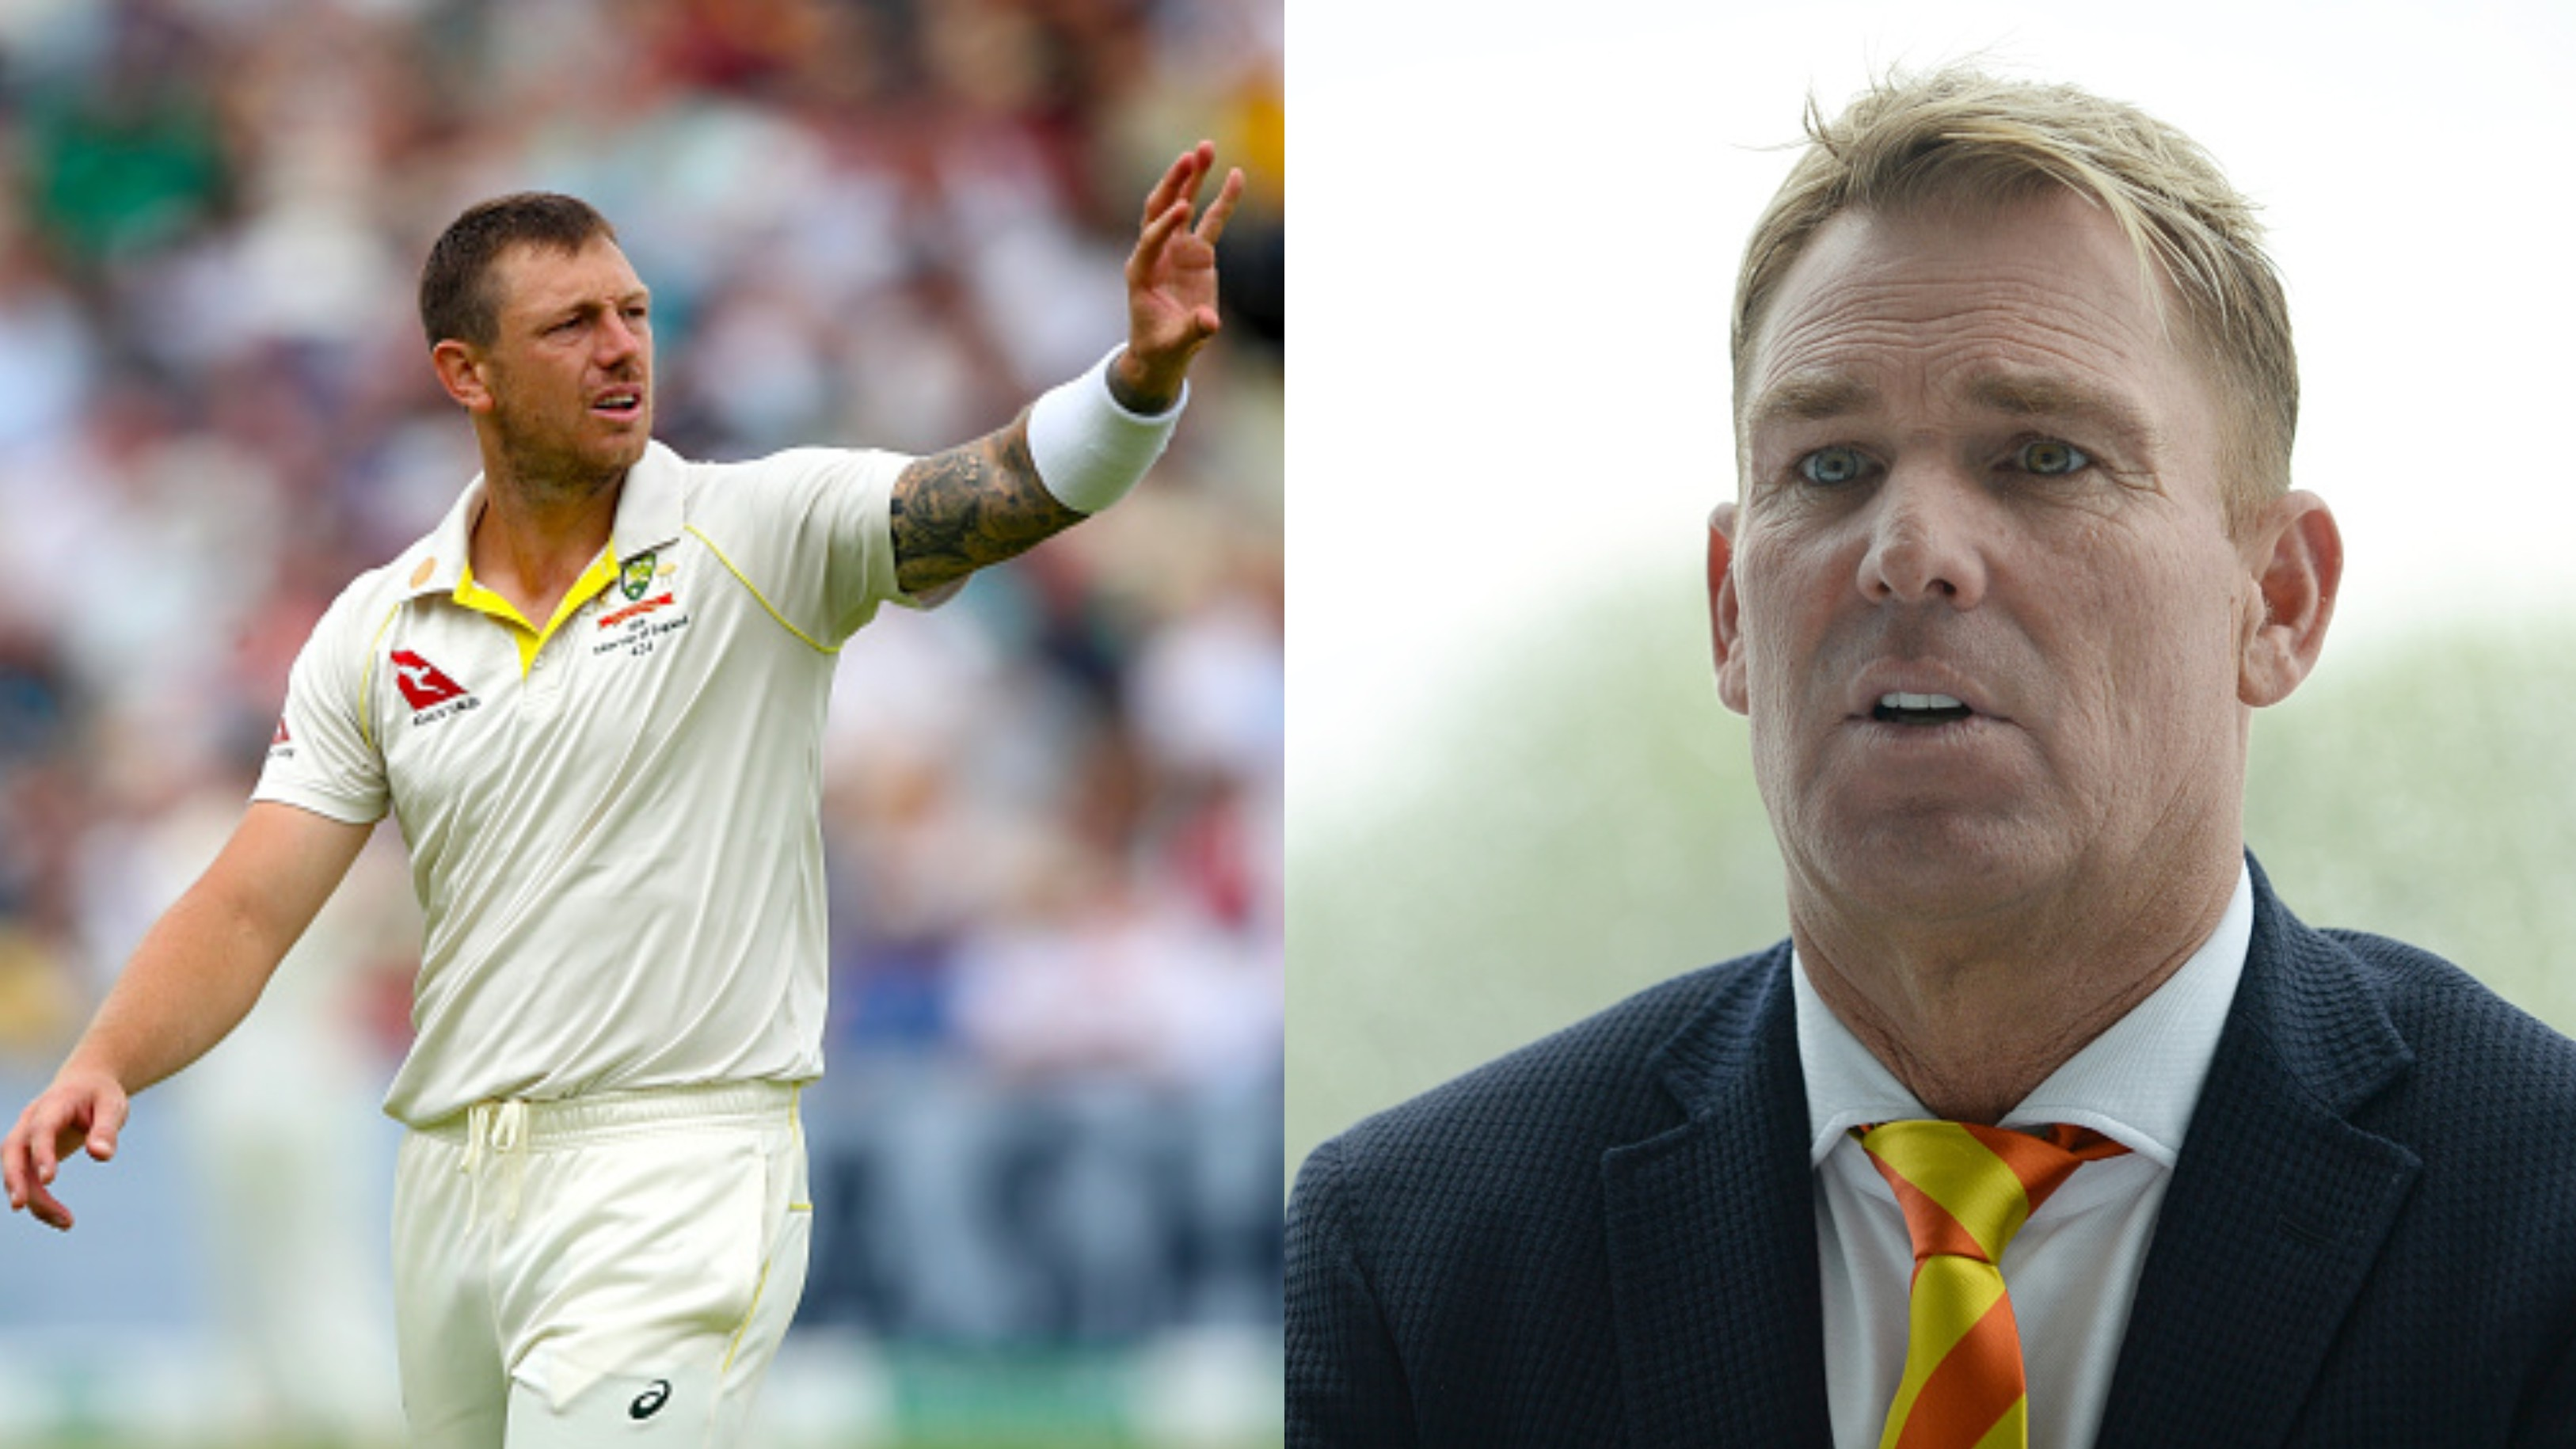 ASHES 2019: Shane Warne slams James Pattinson's exclusion from Lord's Test